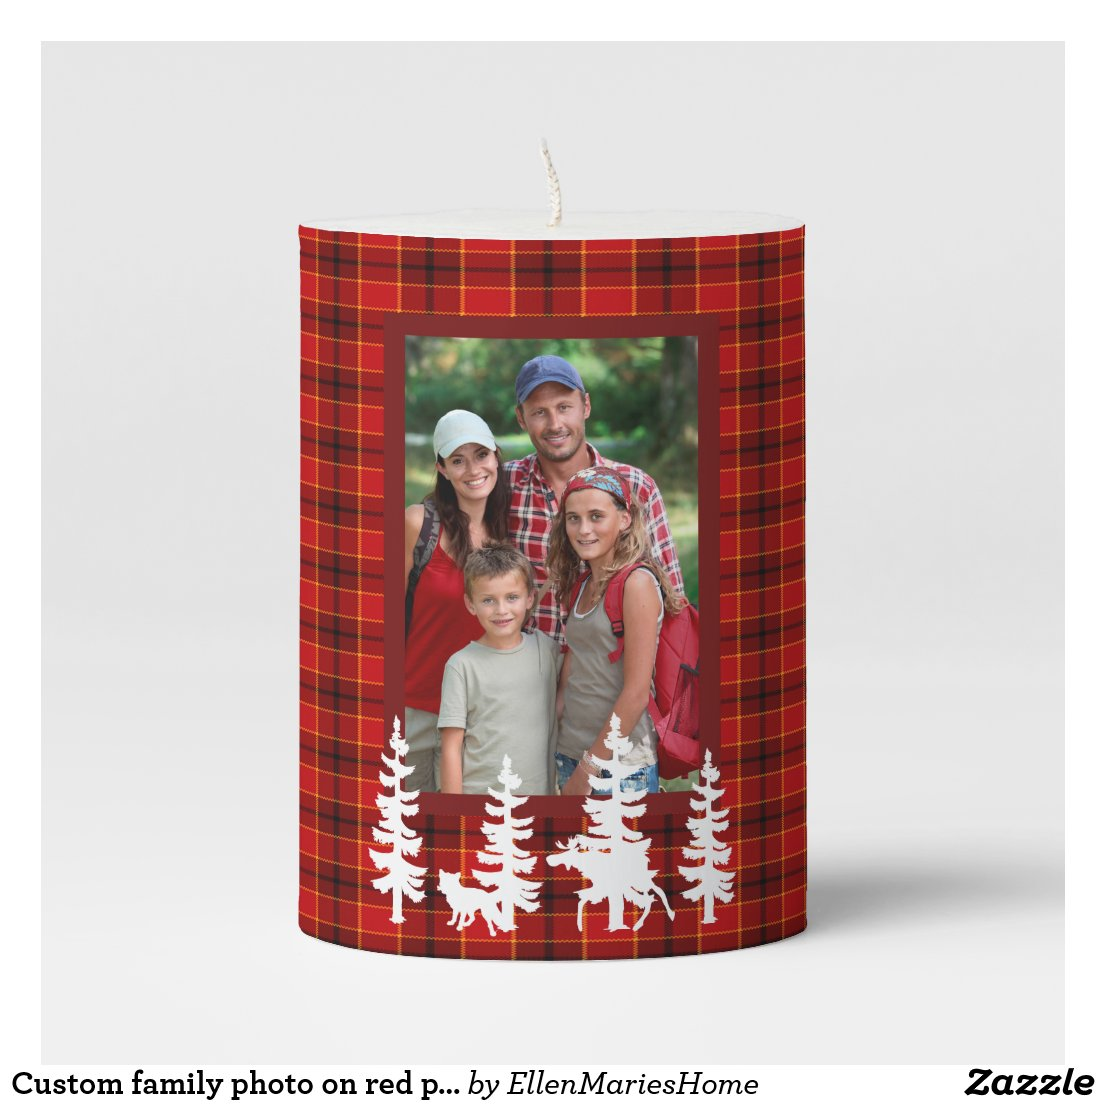 Custom family photo on red plaid pattern forest